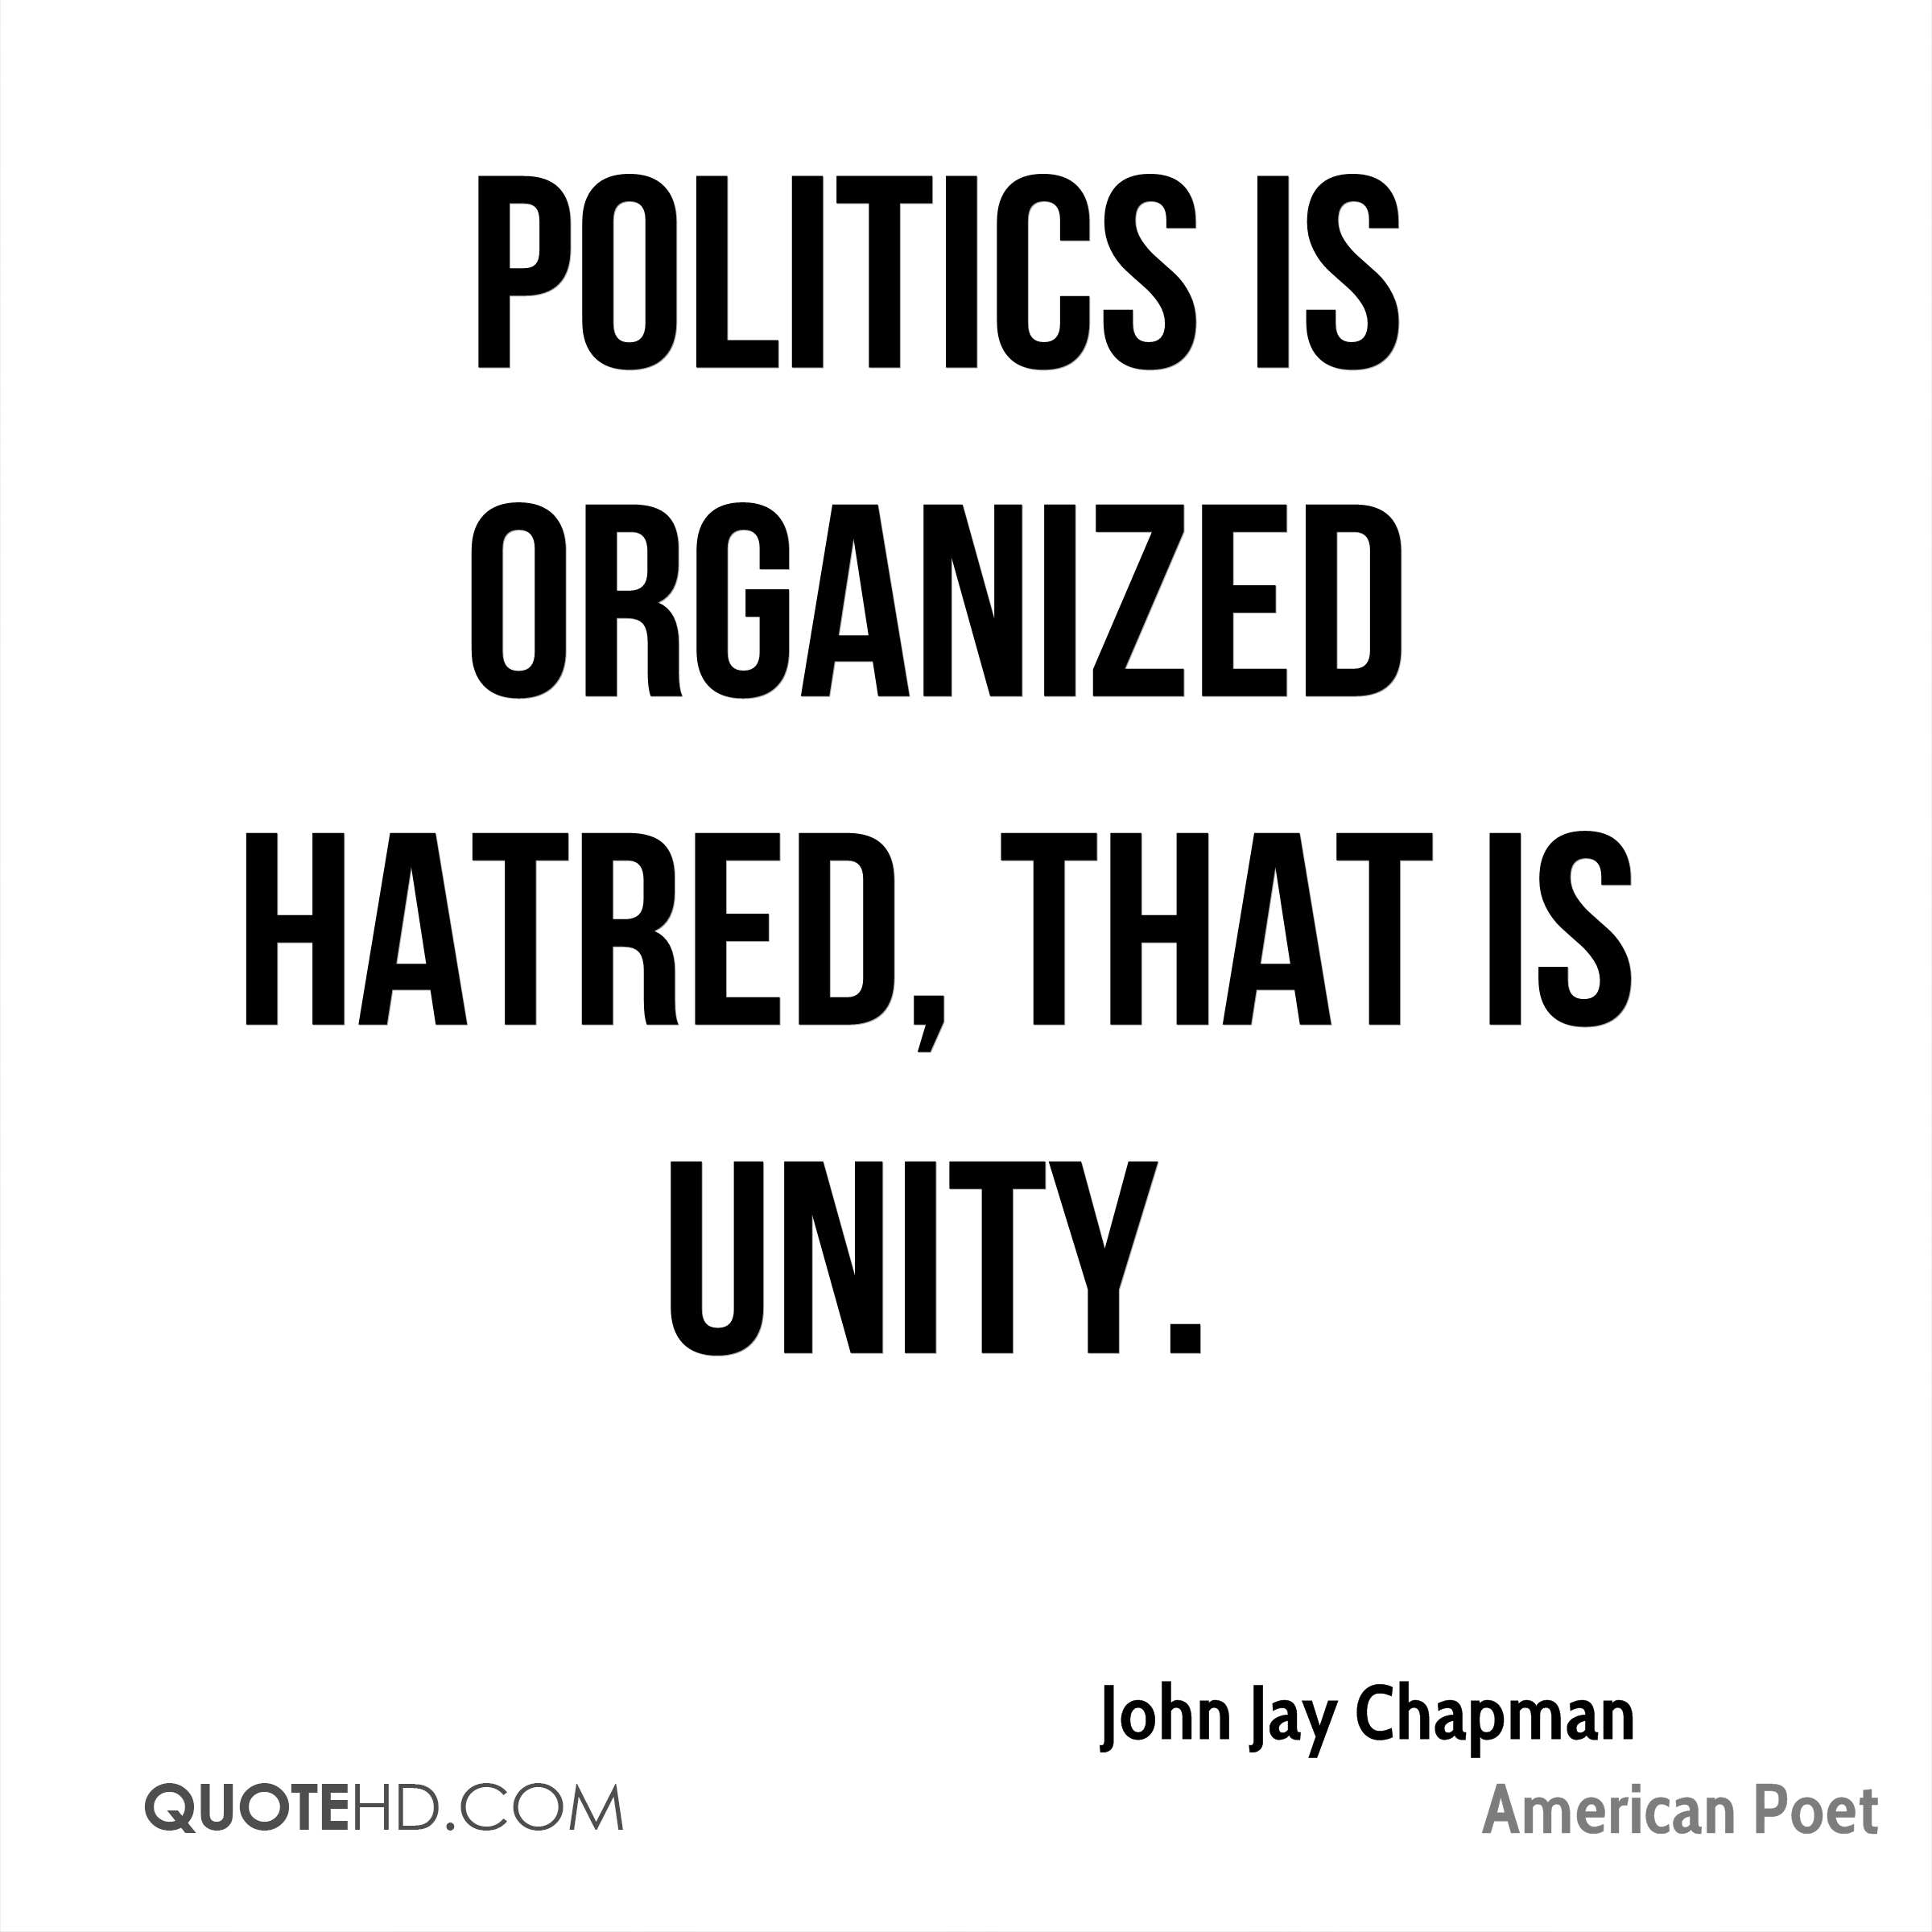 Politics is organized hatred, that is unity.